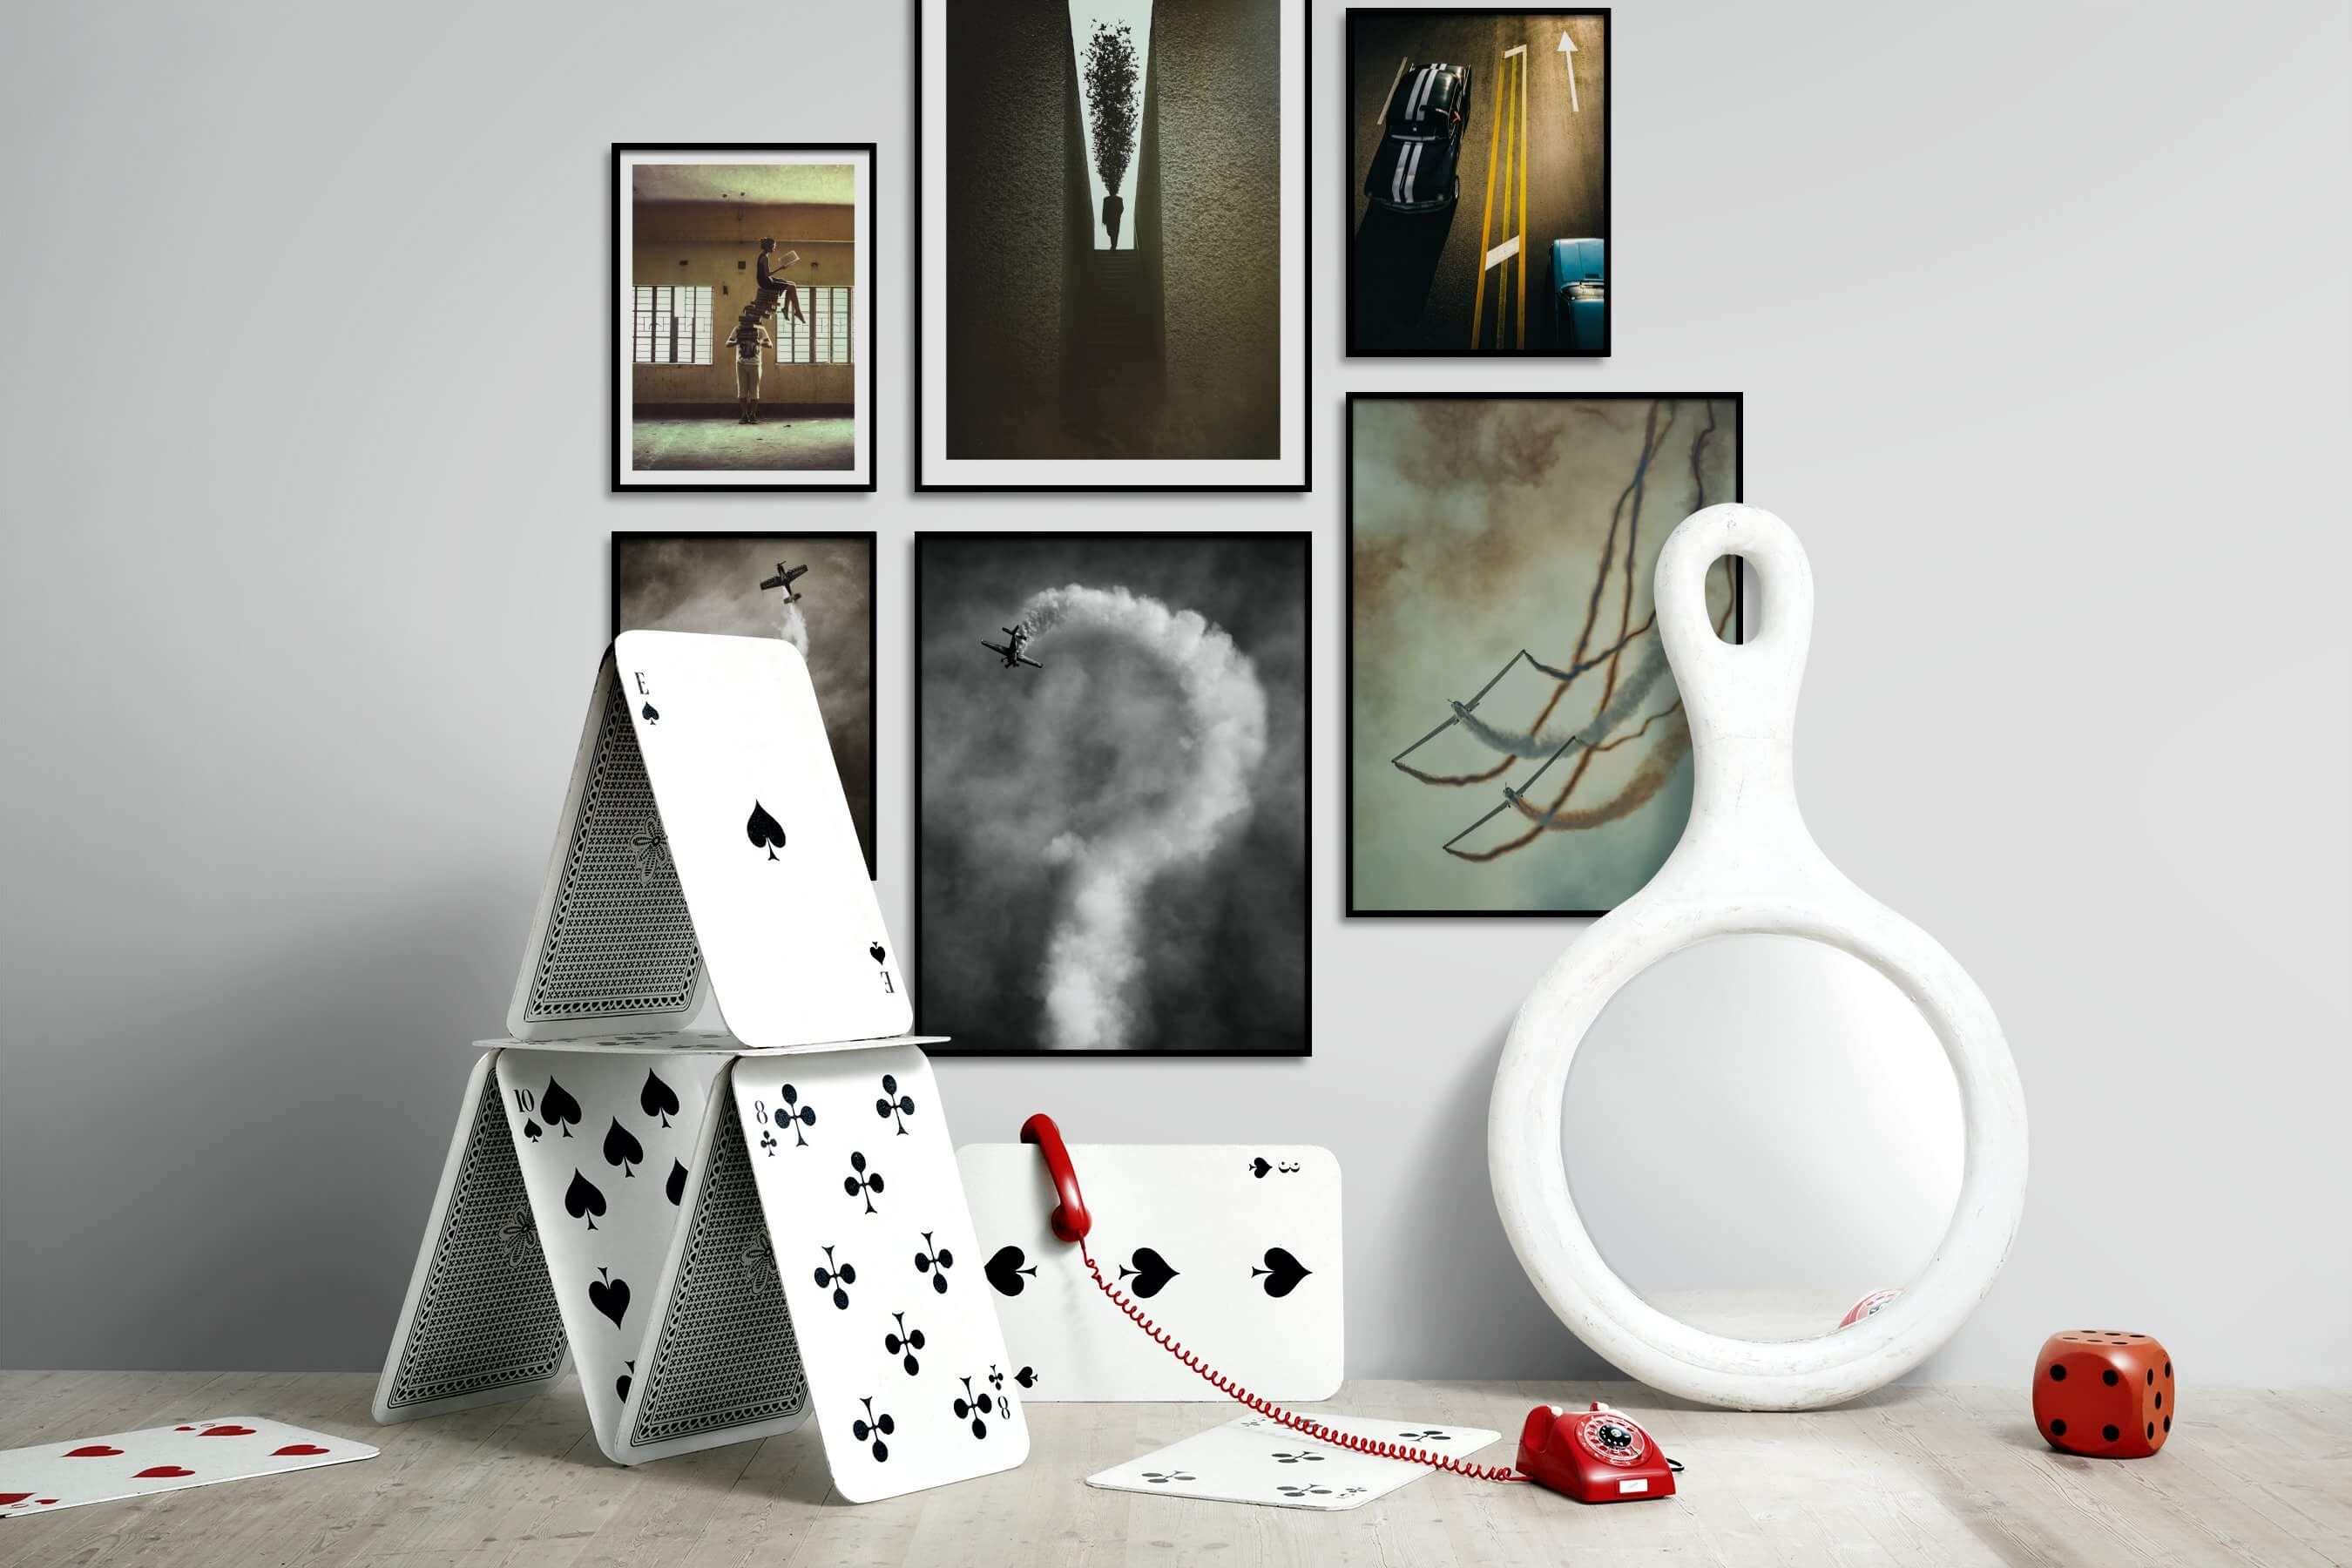 Gallery wall idea with six framed pictures arranged on a wall depicting Artsy, For the Minimalist, Black & White, Vintage, and For the Moderate